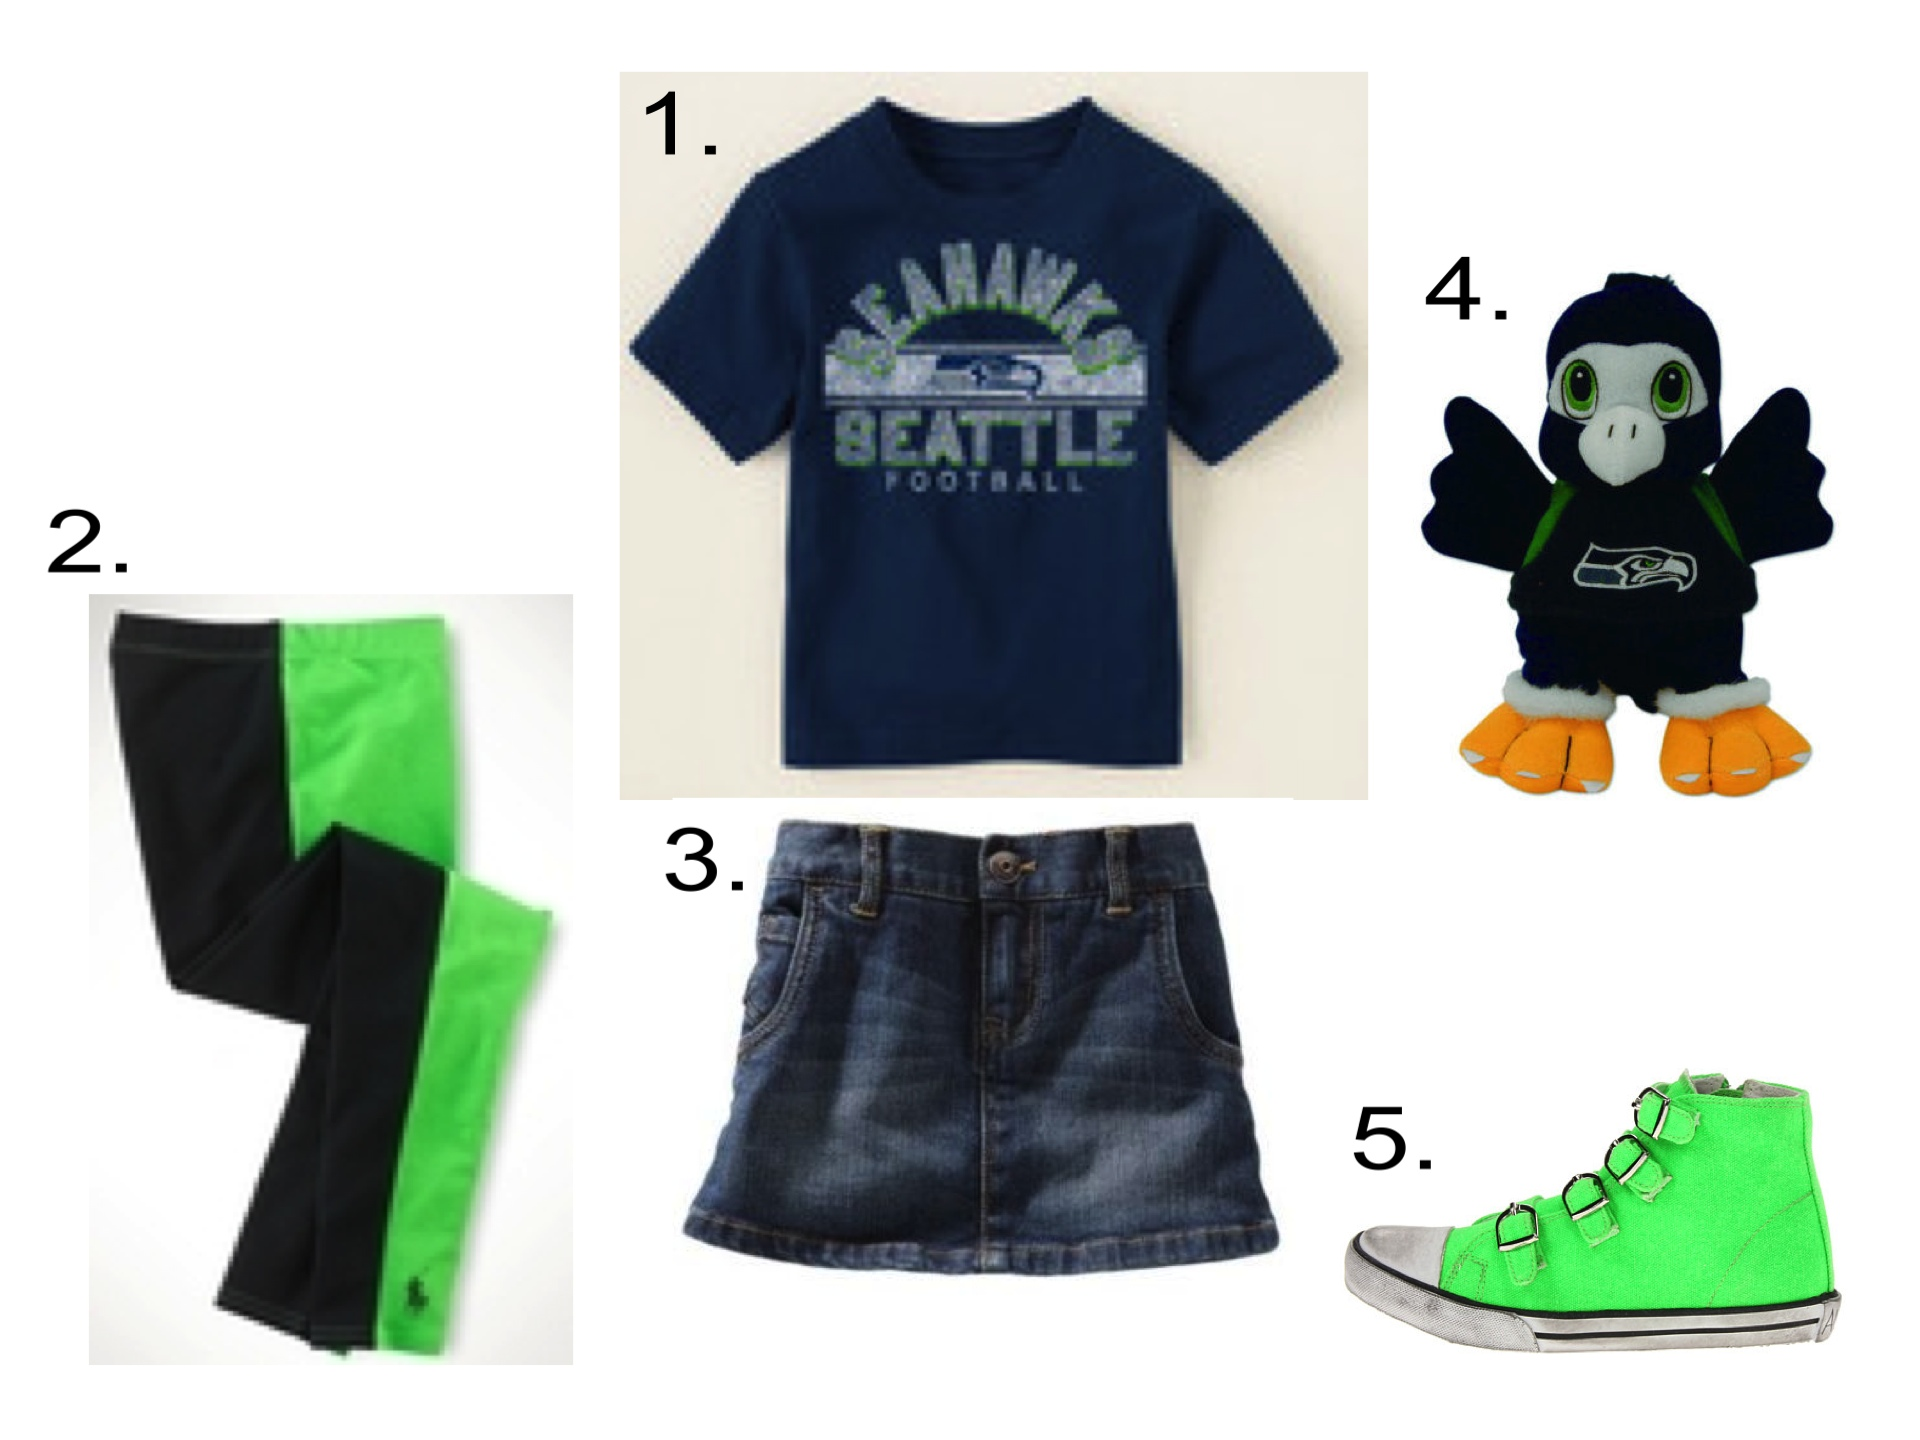 For Sporty Little Seattle Seahawks Fans, I Love a Seattle Seahawks T-Shirt worn with the Genuine Article: OshKosh B'Gosh Denim Skirt and Colorblock Leggings. To complete her Game Day Outfit, these Buckle High Tops are the perfect mix of Girly and Tomboy, and don't forget her Favorite Teams Plush Mascot!  1.  Seattle Seahawks Graphic Tee  |2. Ralph Lauren  Coming & Going Legging  |3. OshKosh B'Gosh  Denim Skirt  | 4.  Seattle Seahawks Plush Mascot Beanie | 5. Amiana  Canvas High Top Sneaker